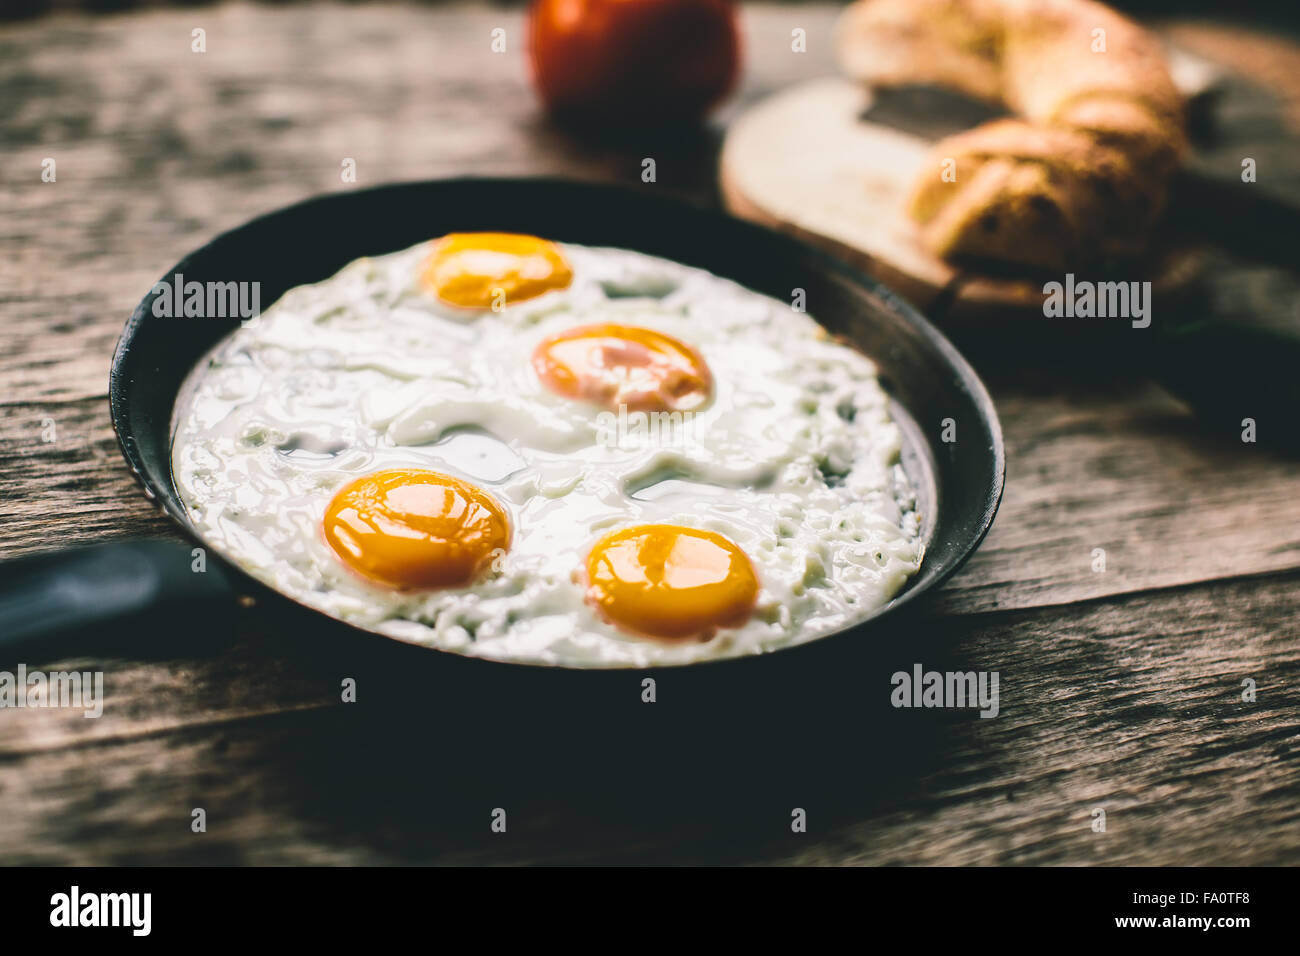 Fried egg in a frying pan on a wooden table - Stock Image